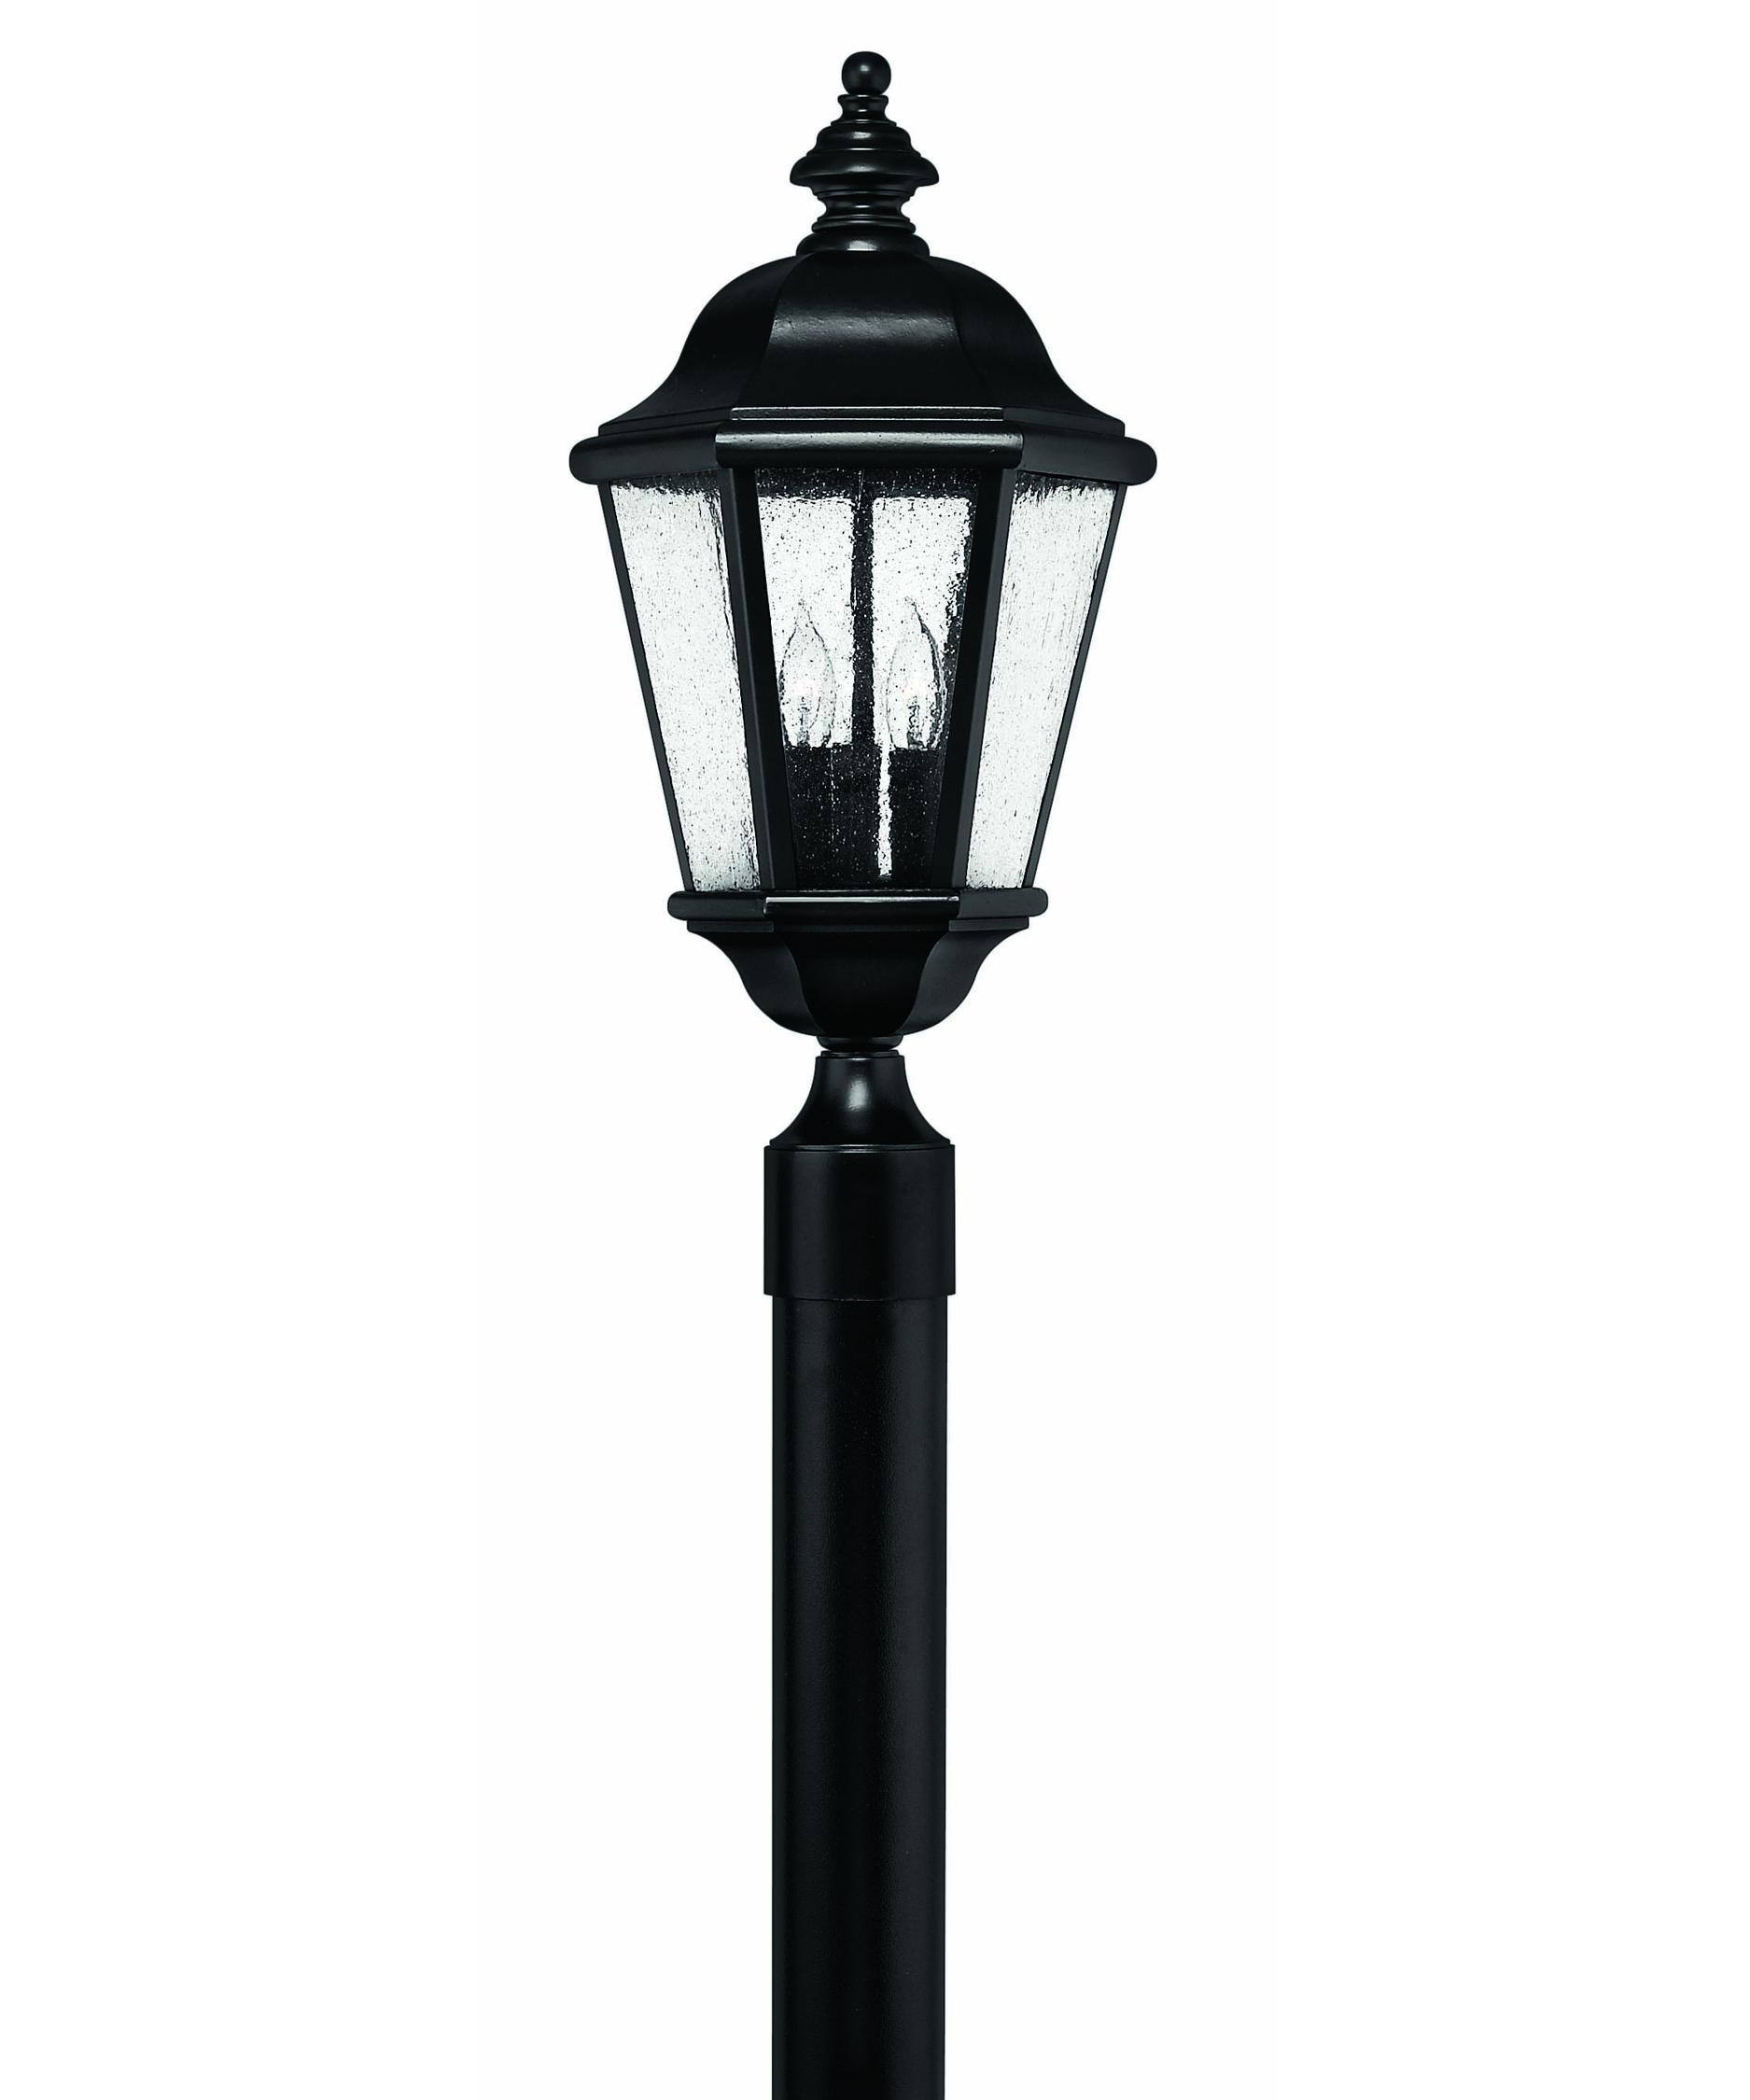 Outdoor Post Light Bulbs: Hinkley Lighting 1671 Edgewater 3 Light Outdoor Post Lamp